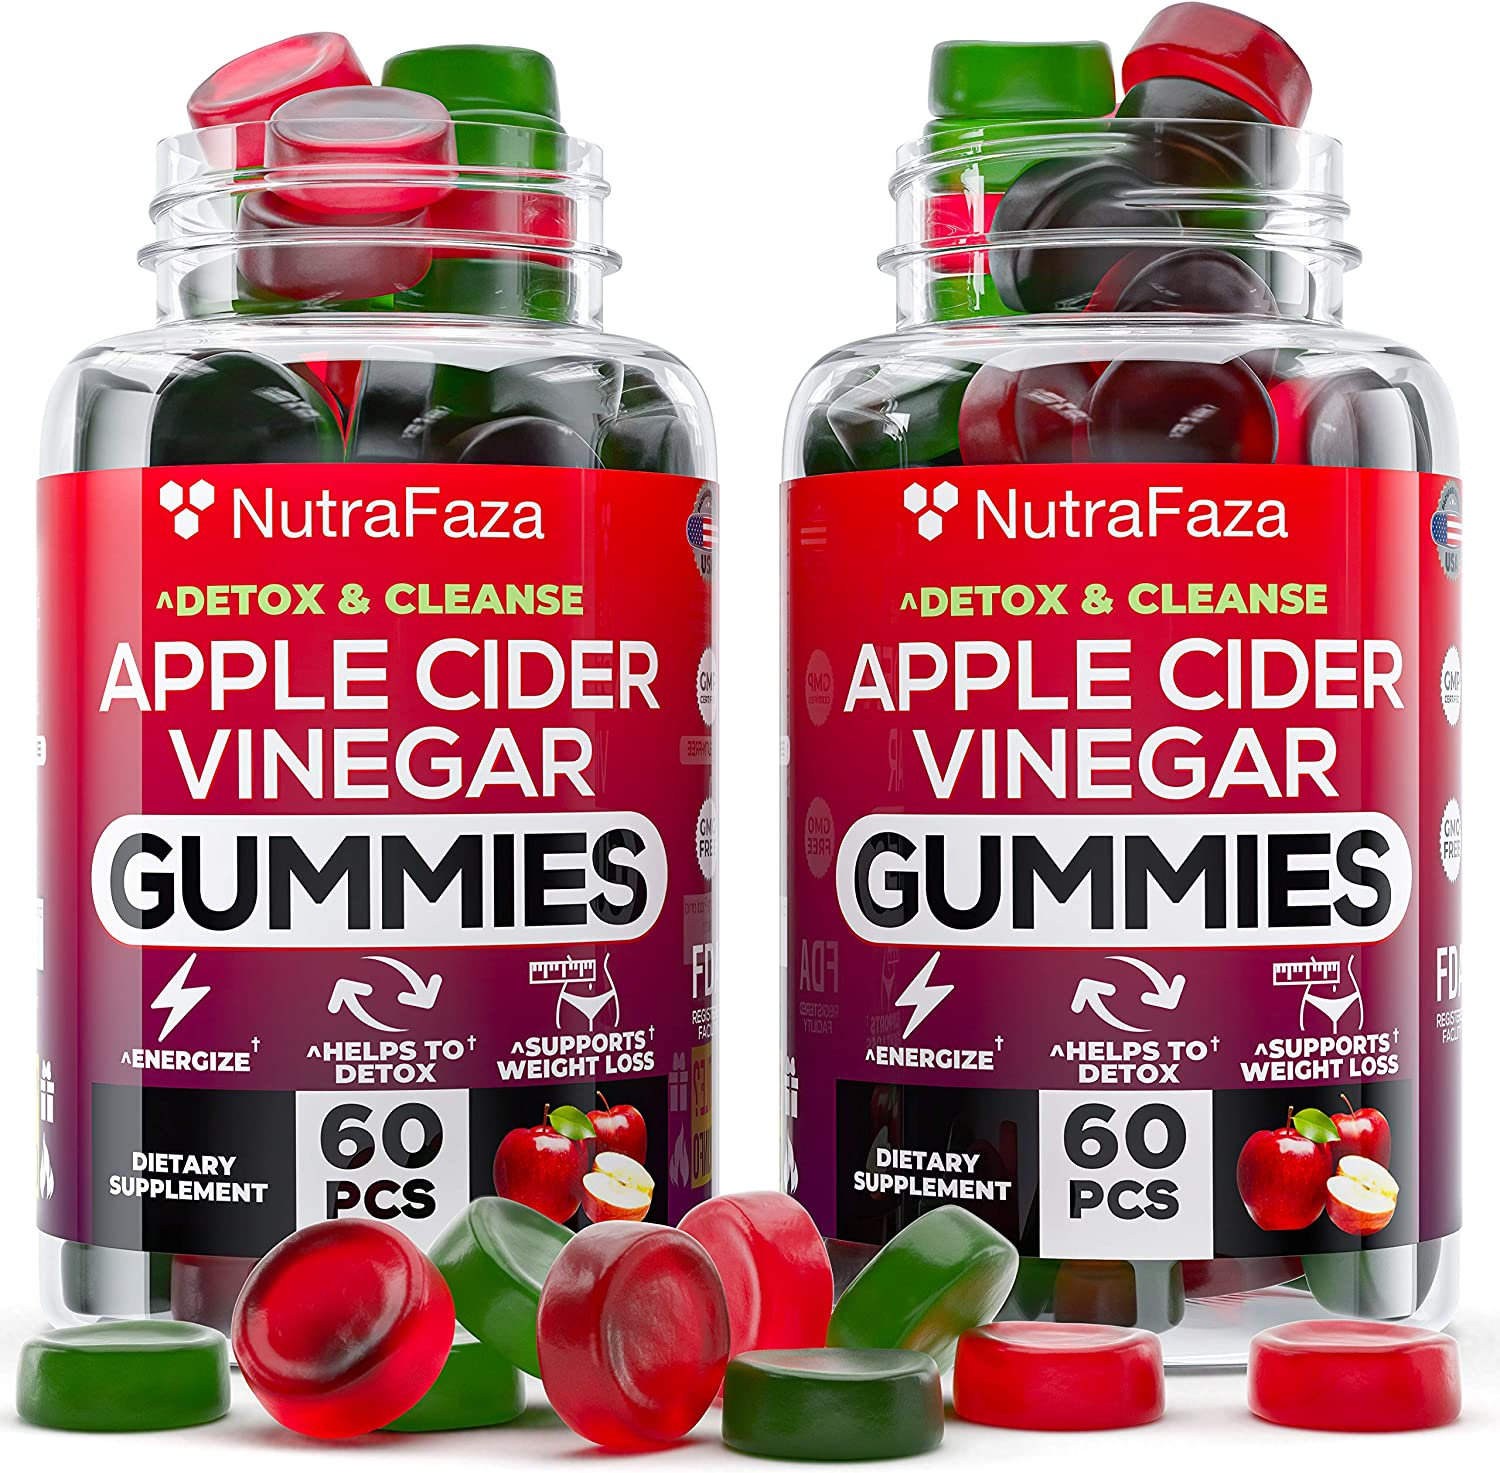 (2 Pack) Apple Cider Vinegar Gummies with Mother for Immun? Support - Vegan - Detox, Cleanse Support - Bloating Relief - Gummy Alternative to Apple Cider Vinegar Capsules, P?lls, Made in USA